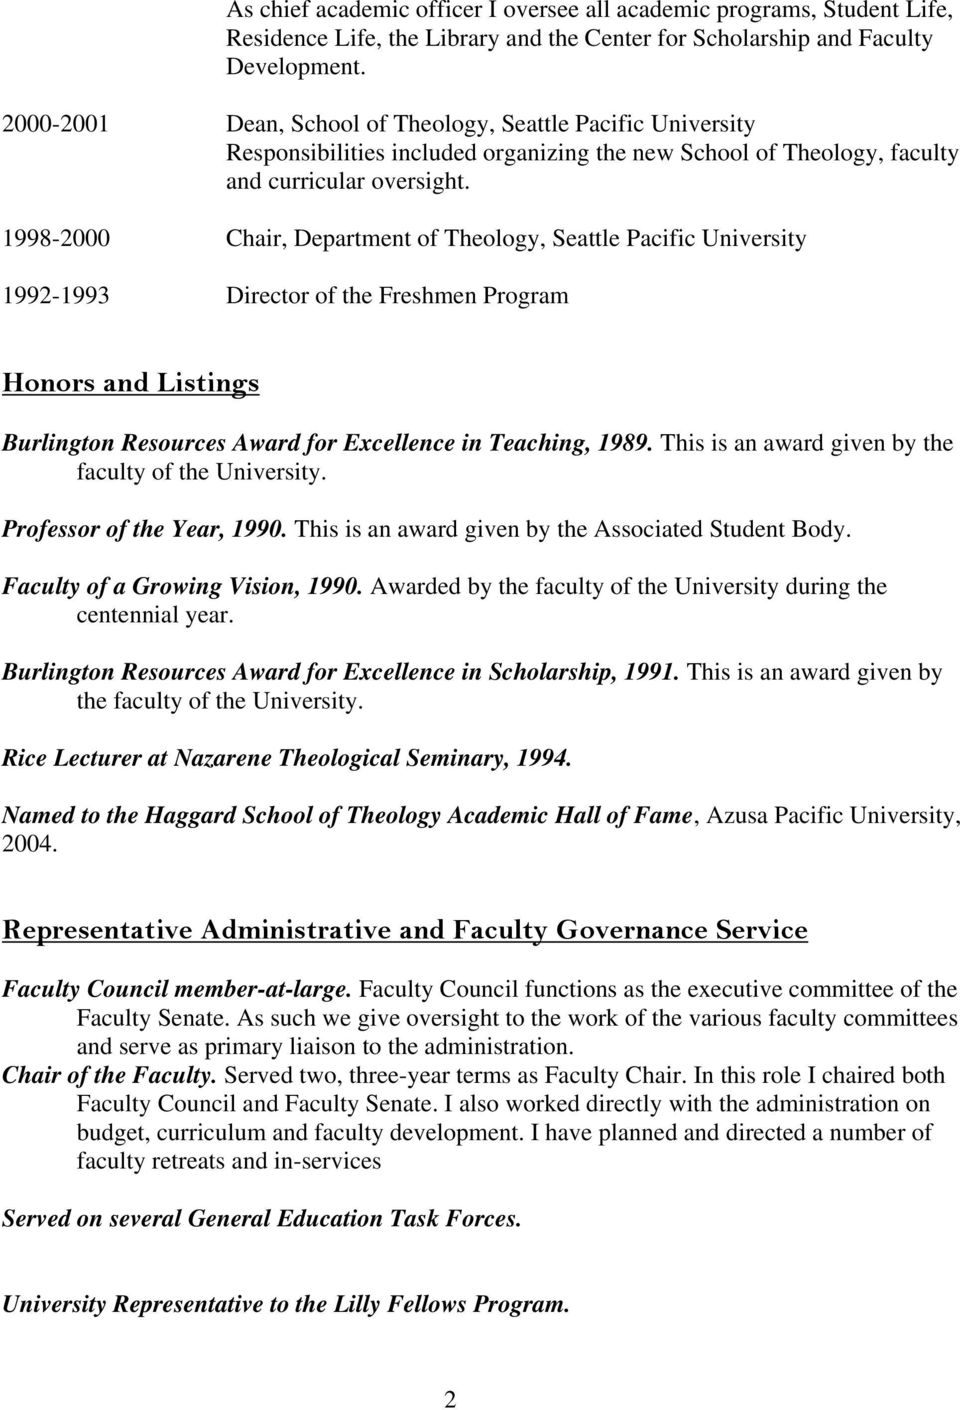 1998-2000 Chair, Department of Theology, Seattle Pacific University 1992-1993 Director of the Freshmen Program Honors and Listings Burlington Resources Award for Excellence in Teaching, 1989.